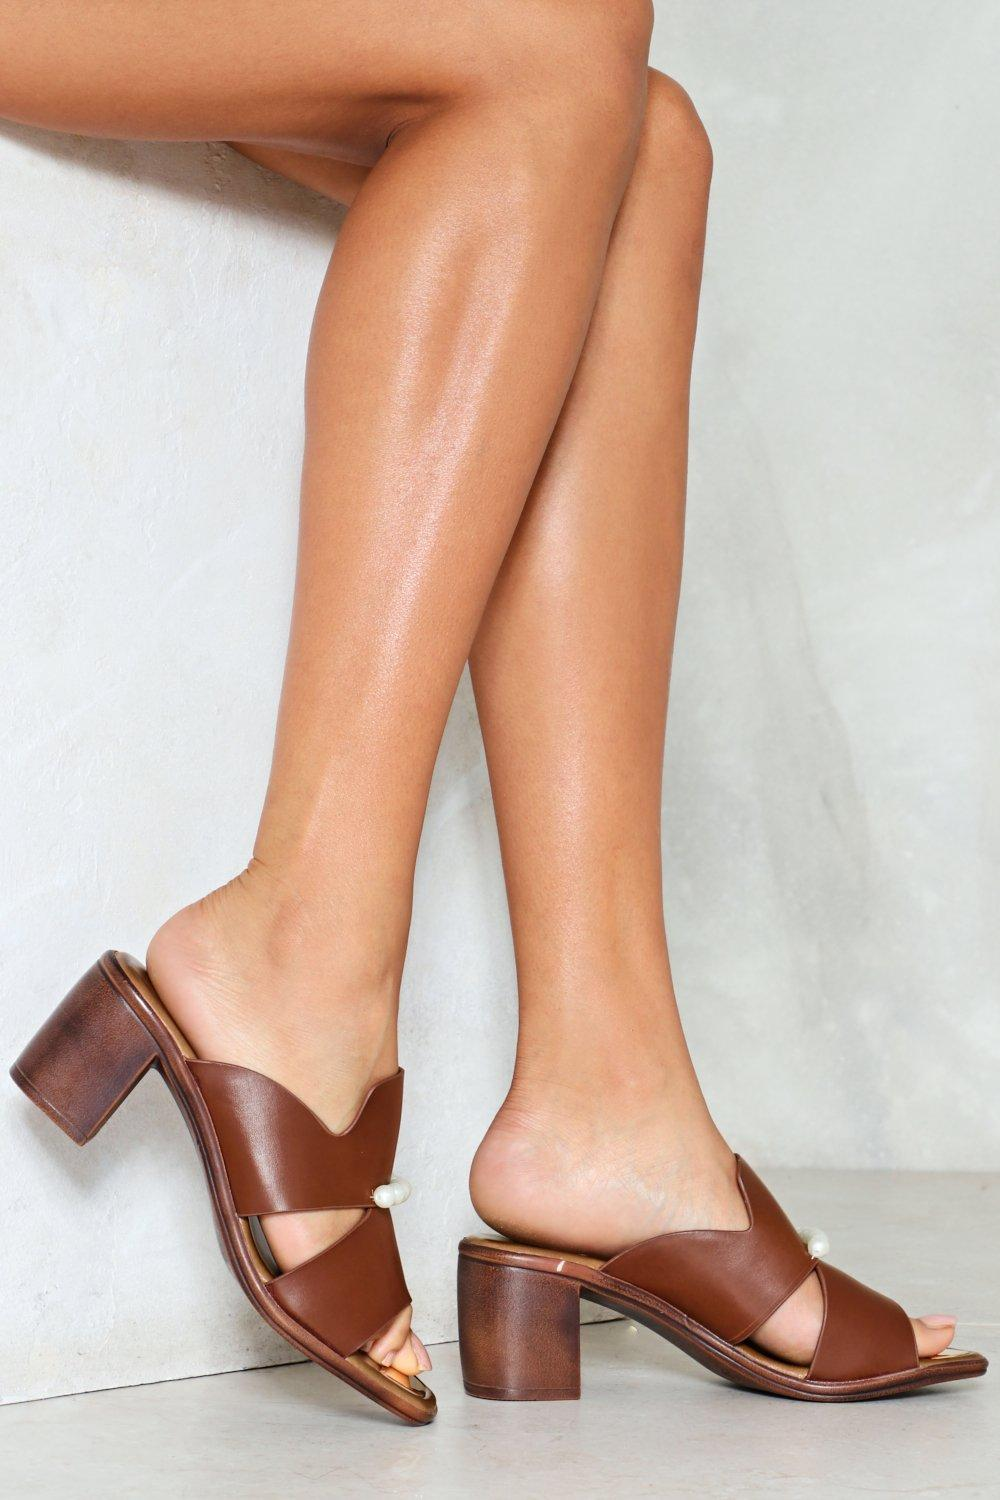 Pearl-fection Vegan Leather Mule